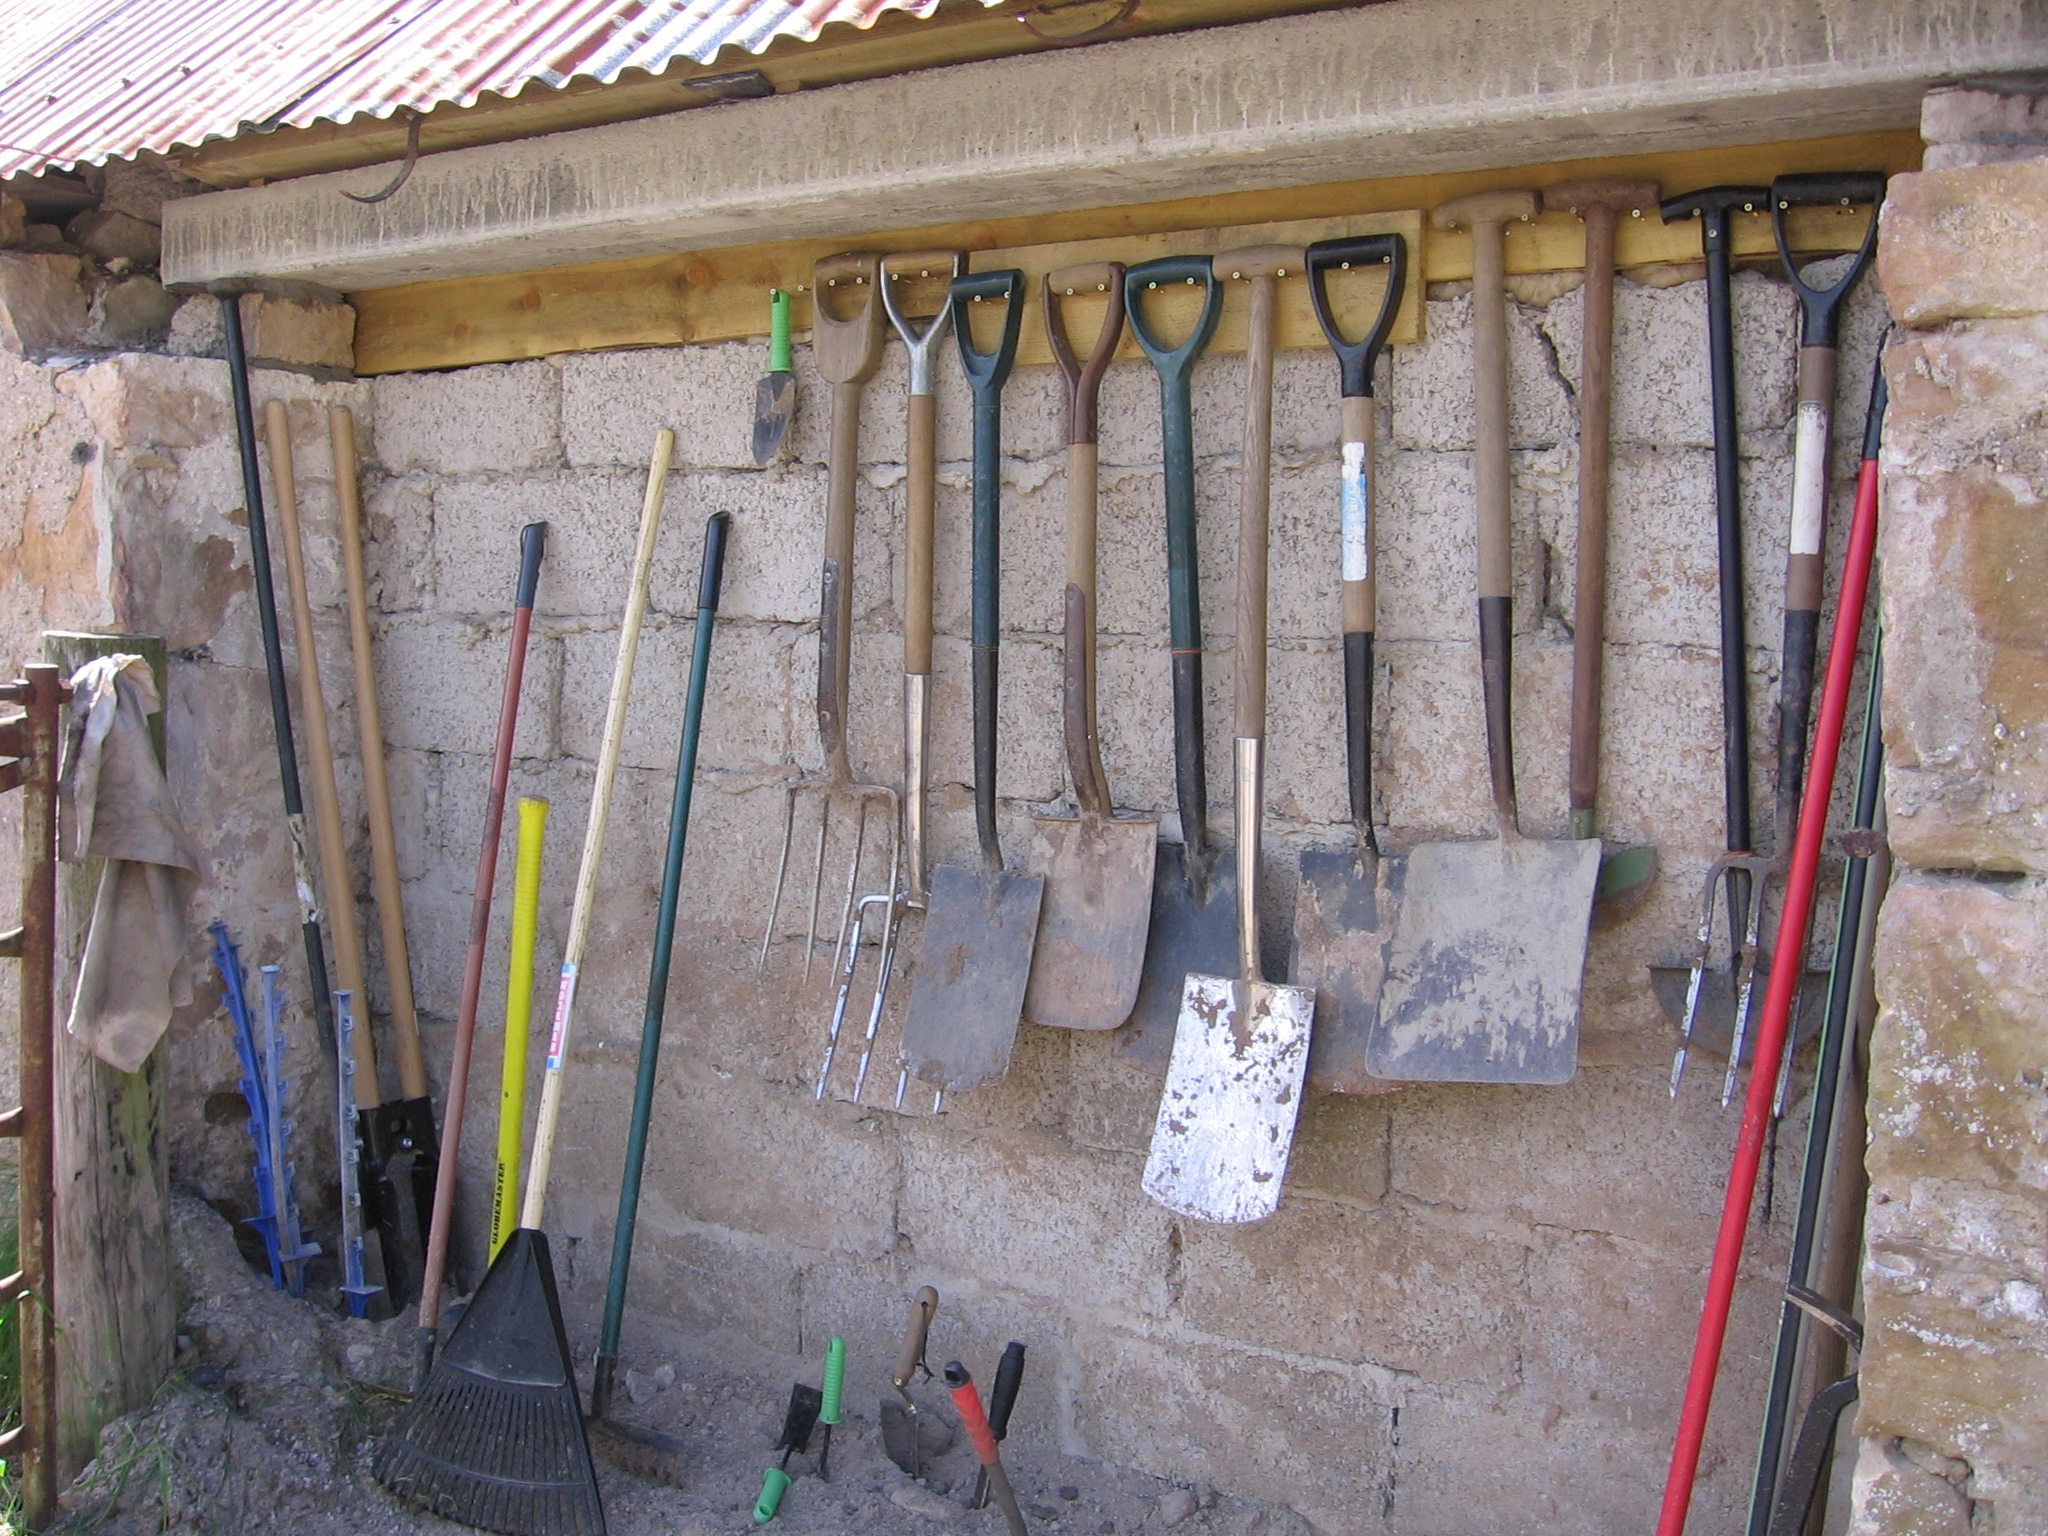 List Of Landscaping Tools And Equipment : Landscaping tools and equipment list garden tool